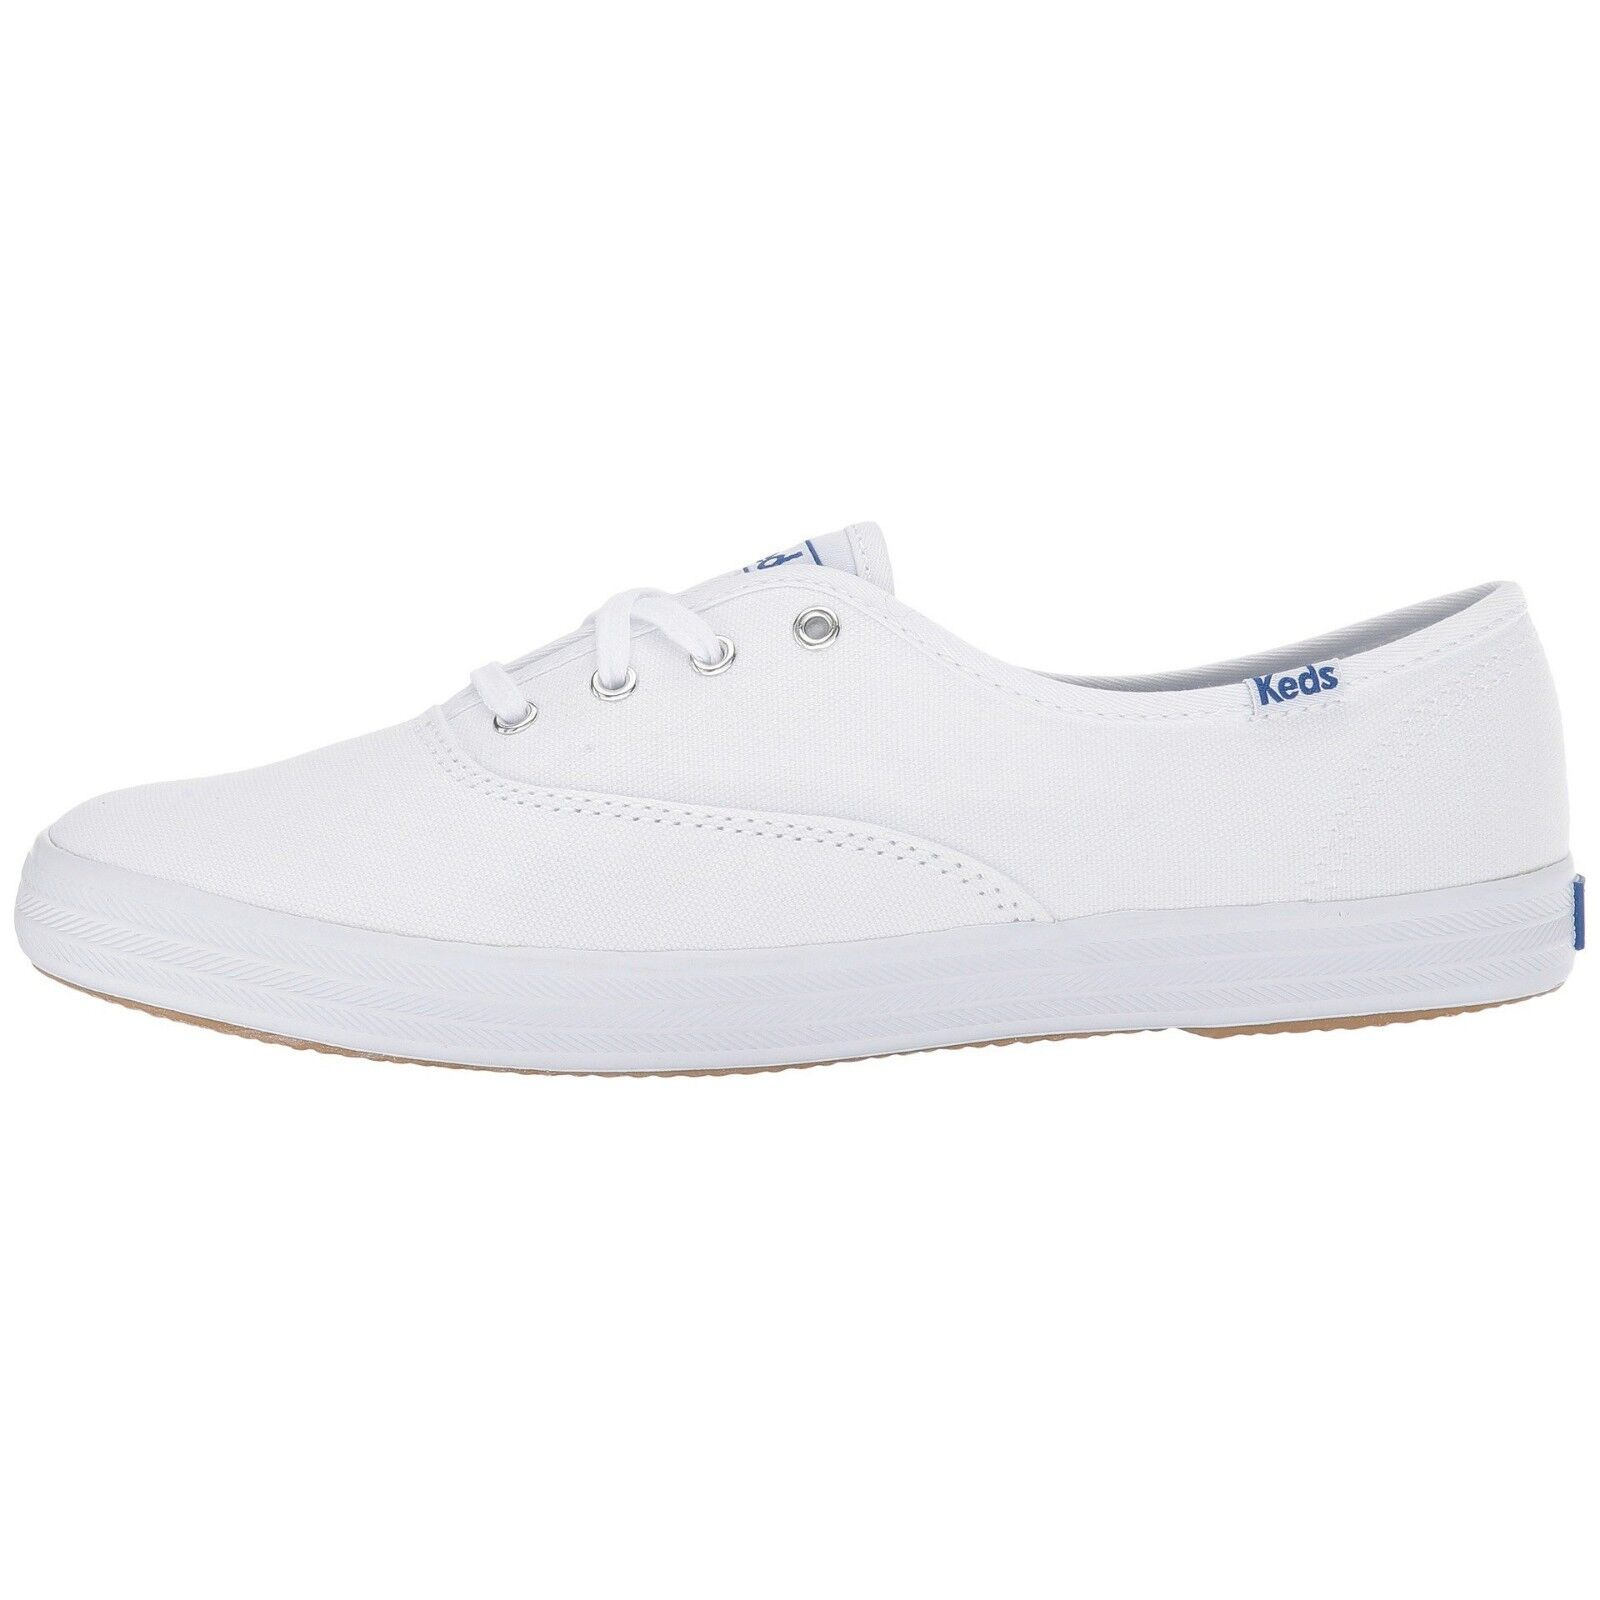 Women's Keds Champion Oxford Canvas Fashion Sneaker White Canvas All Sizes NIB